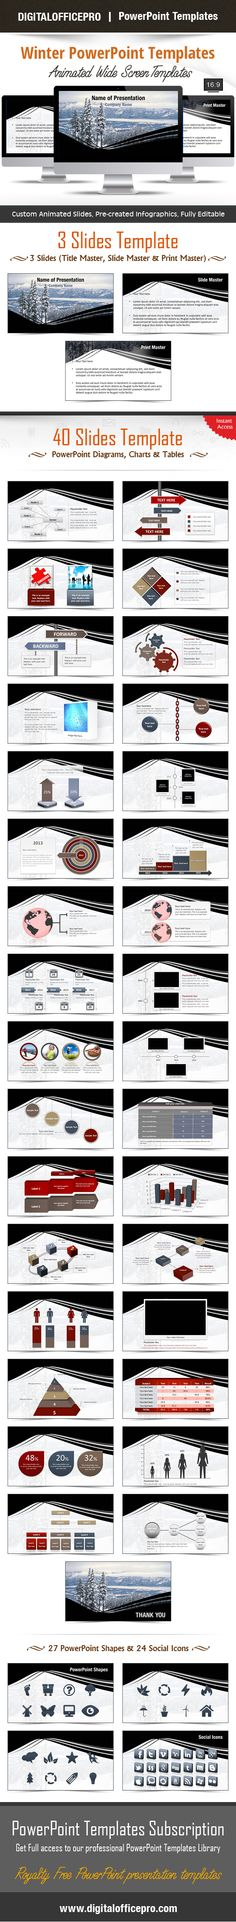 Mainboard PowerPoint Template Backgrounds - winter powerpoint template